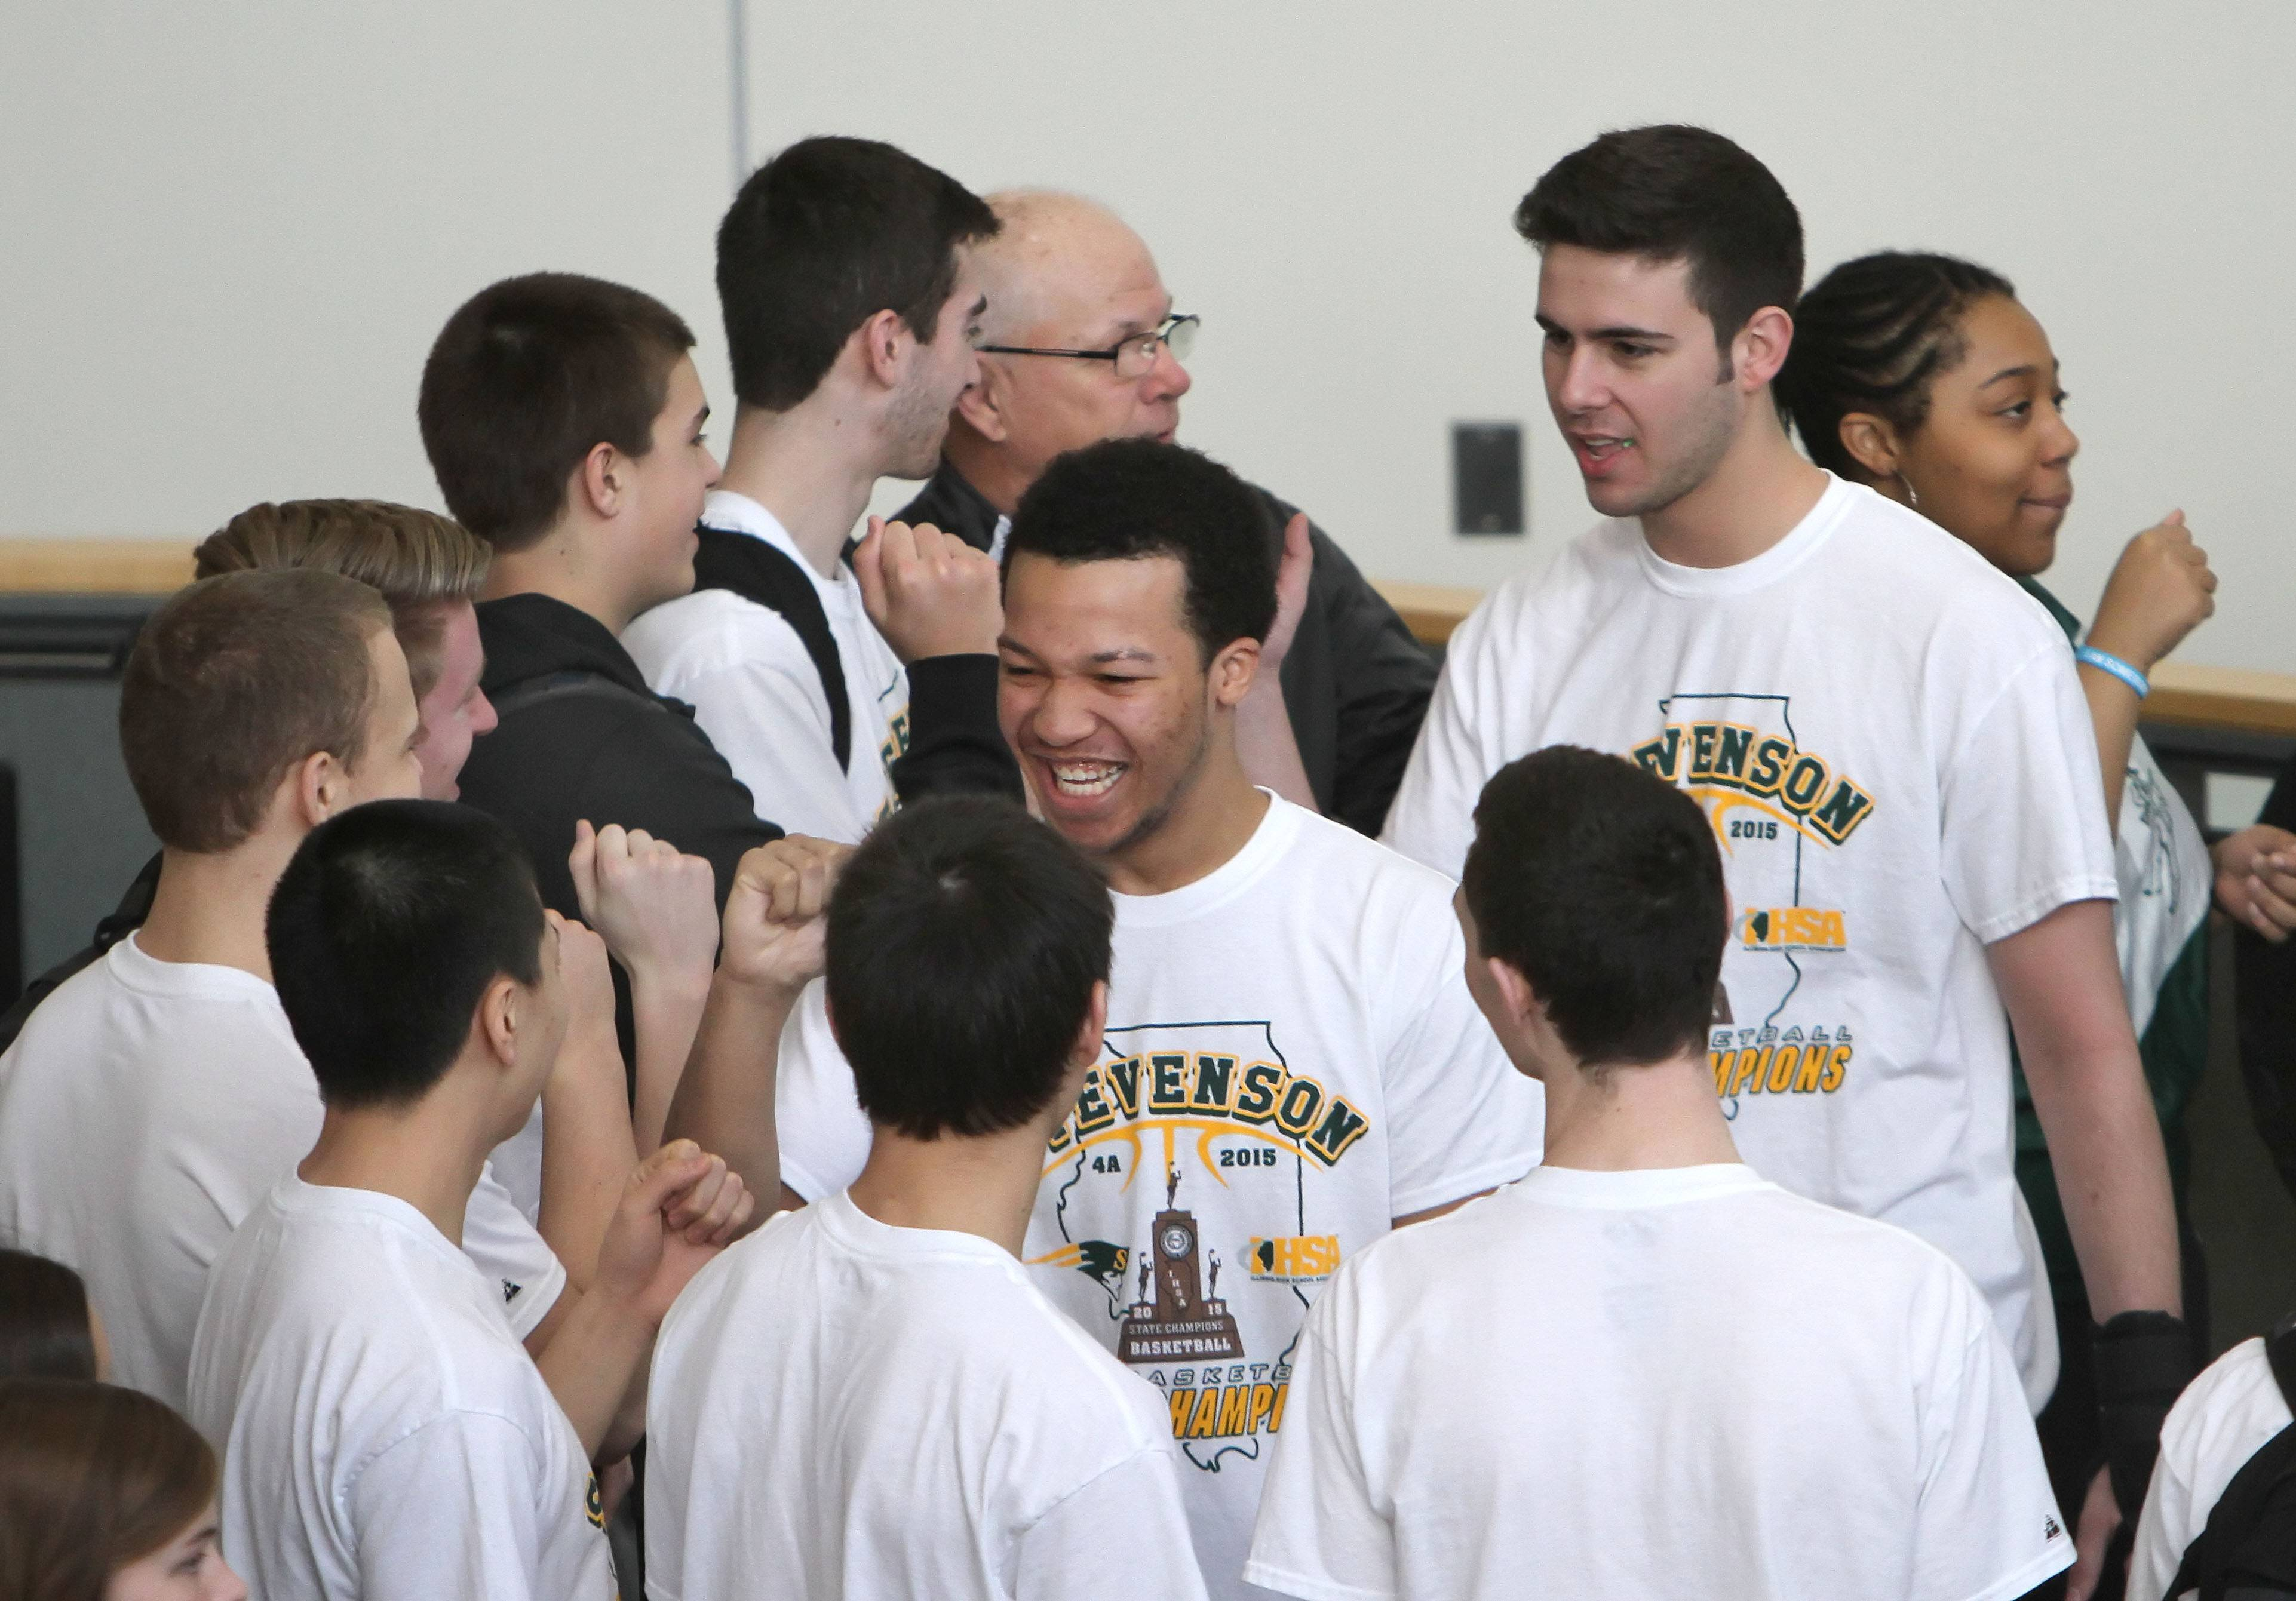 Stevenson High School's Jalen Brunson, left, and Parker Nichols high-five fellow players after being announced as students, staff and community members gathered Thursday to celebrate the boys basketball Class 4A state title in the forum at the Lincolnshire school.